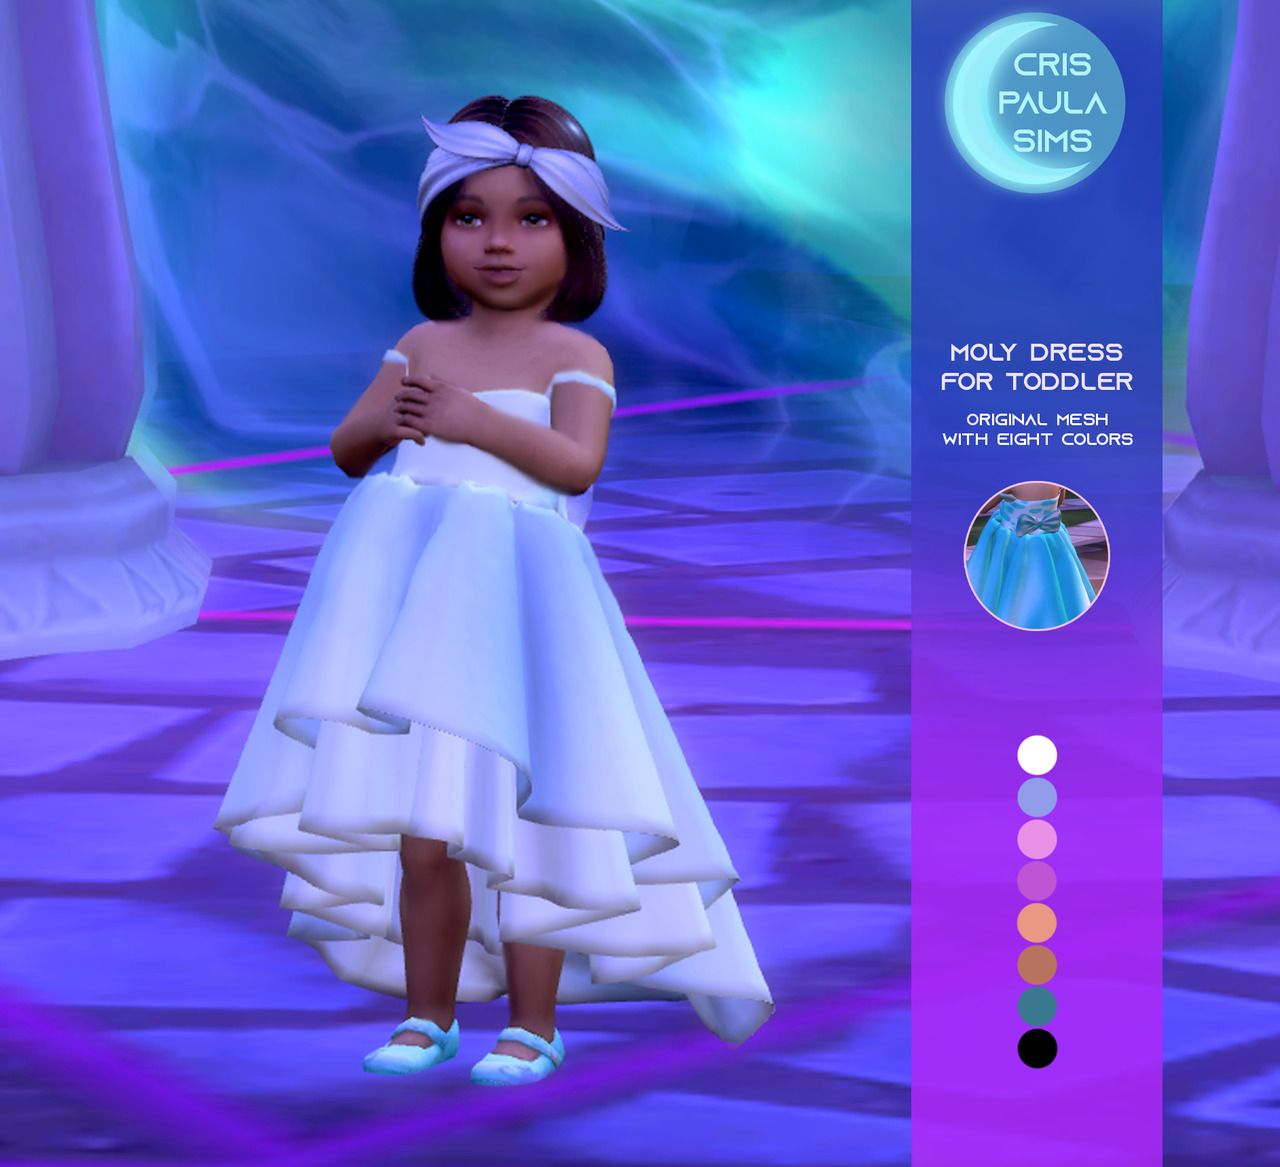 THE SIMS 4 – MOLY DRESS FOR TODDLER